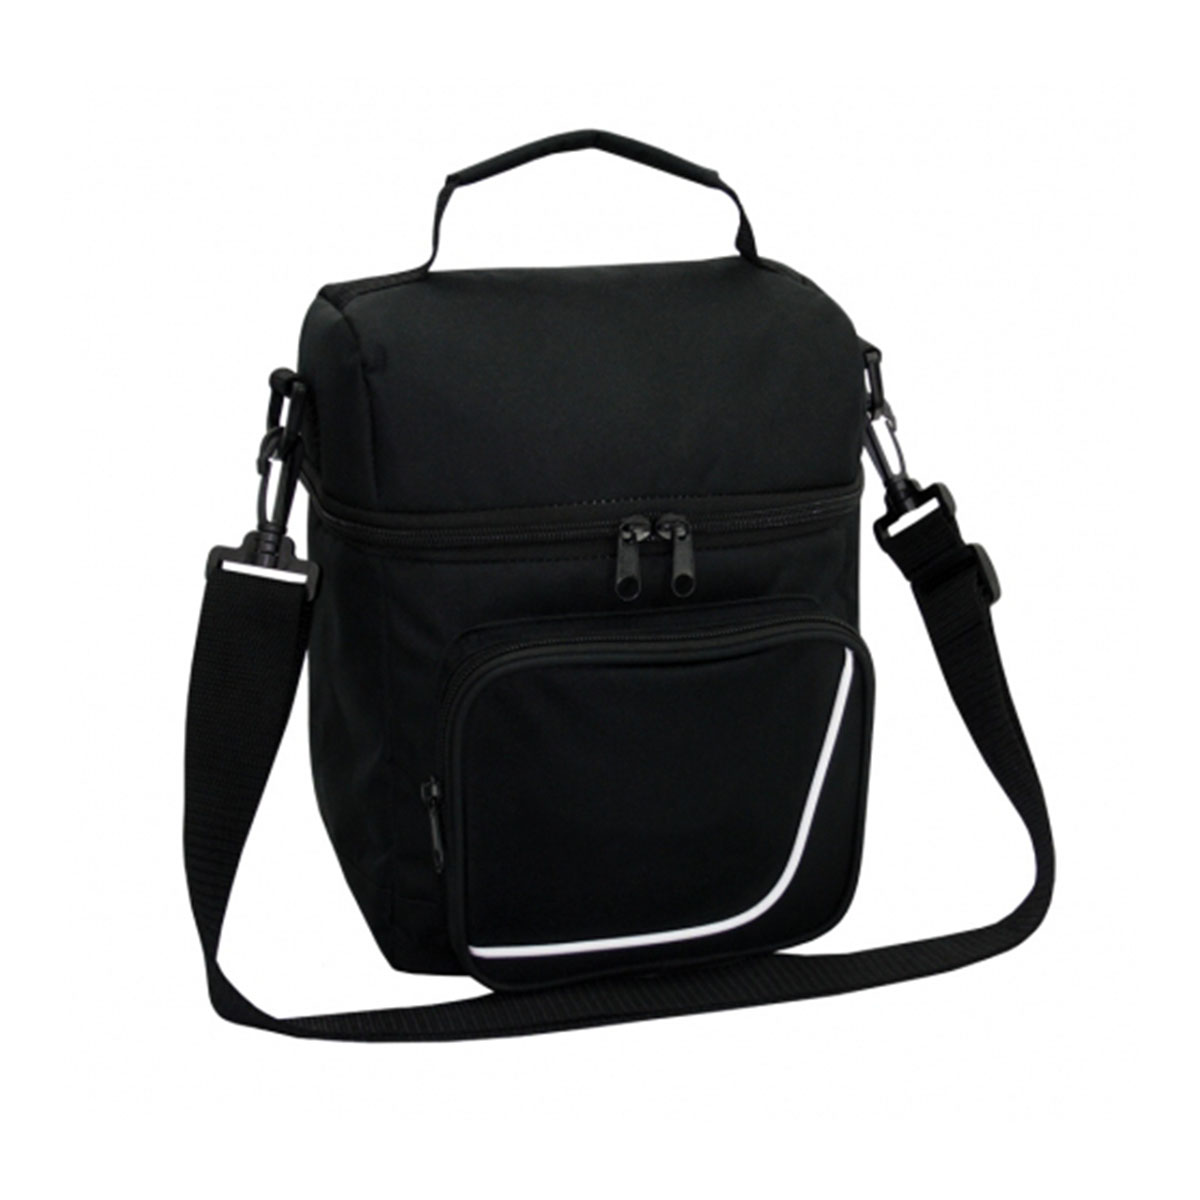 Urban cooler bag-Black / White